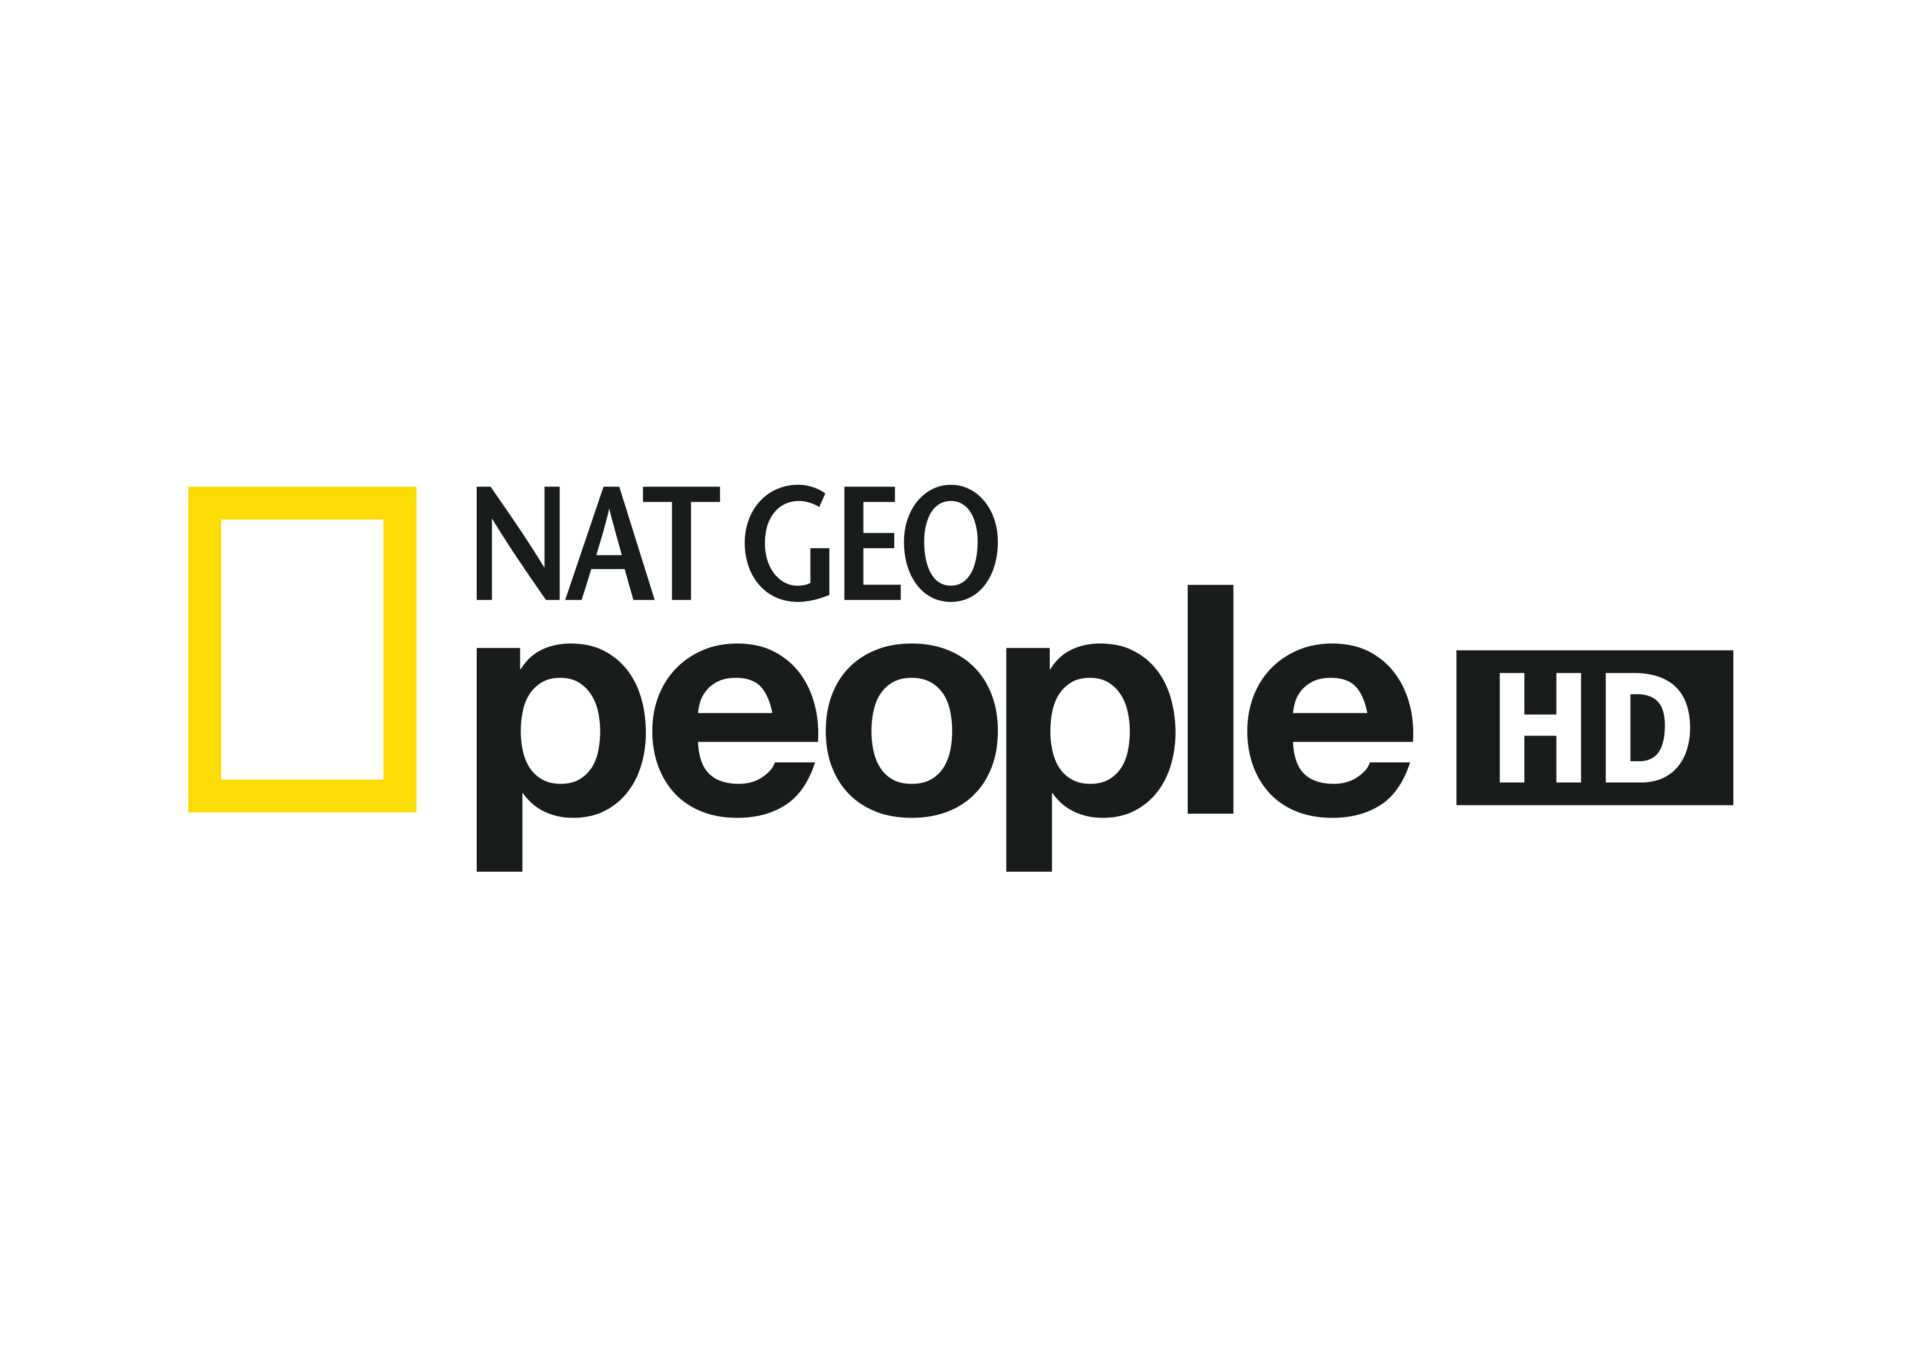 Nat Geo People: nuovo canale su Sky da Marzo | Digitale terrestre: Dtti.it